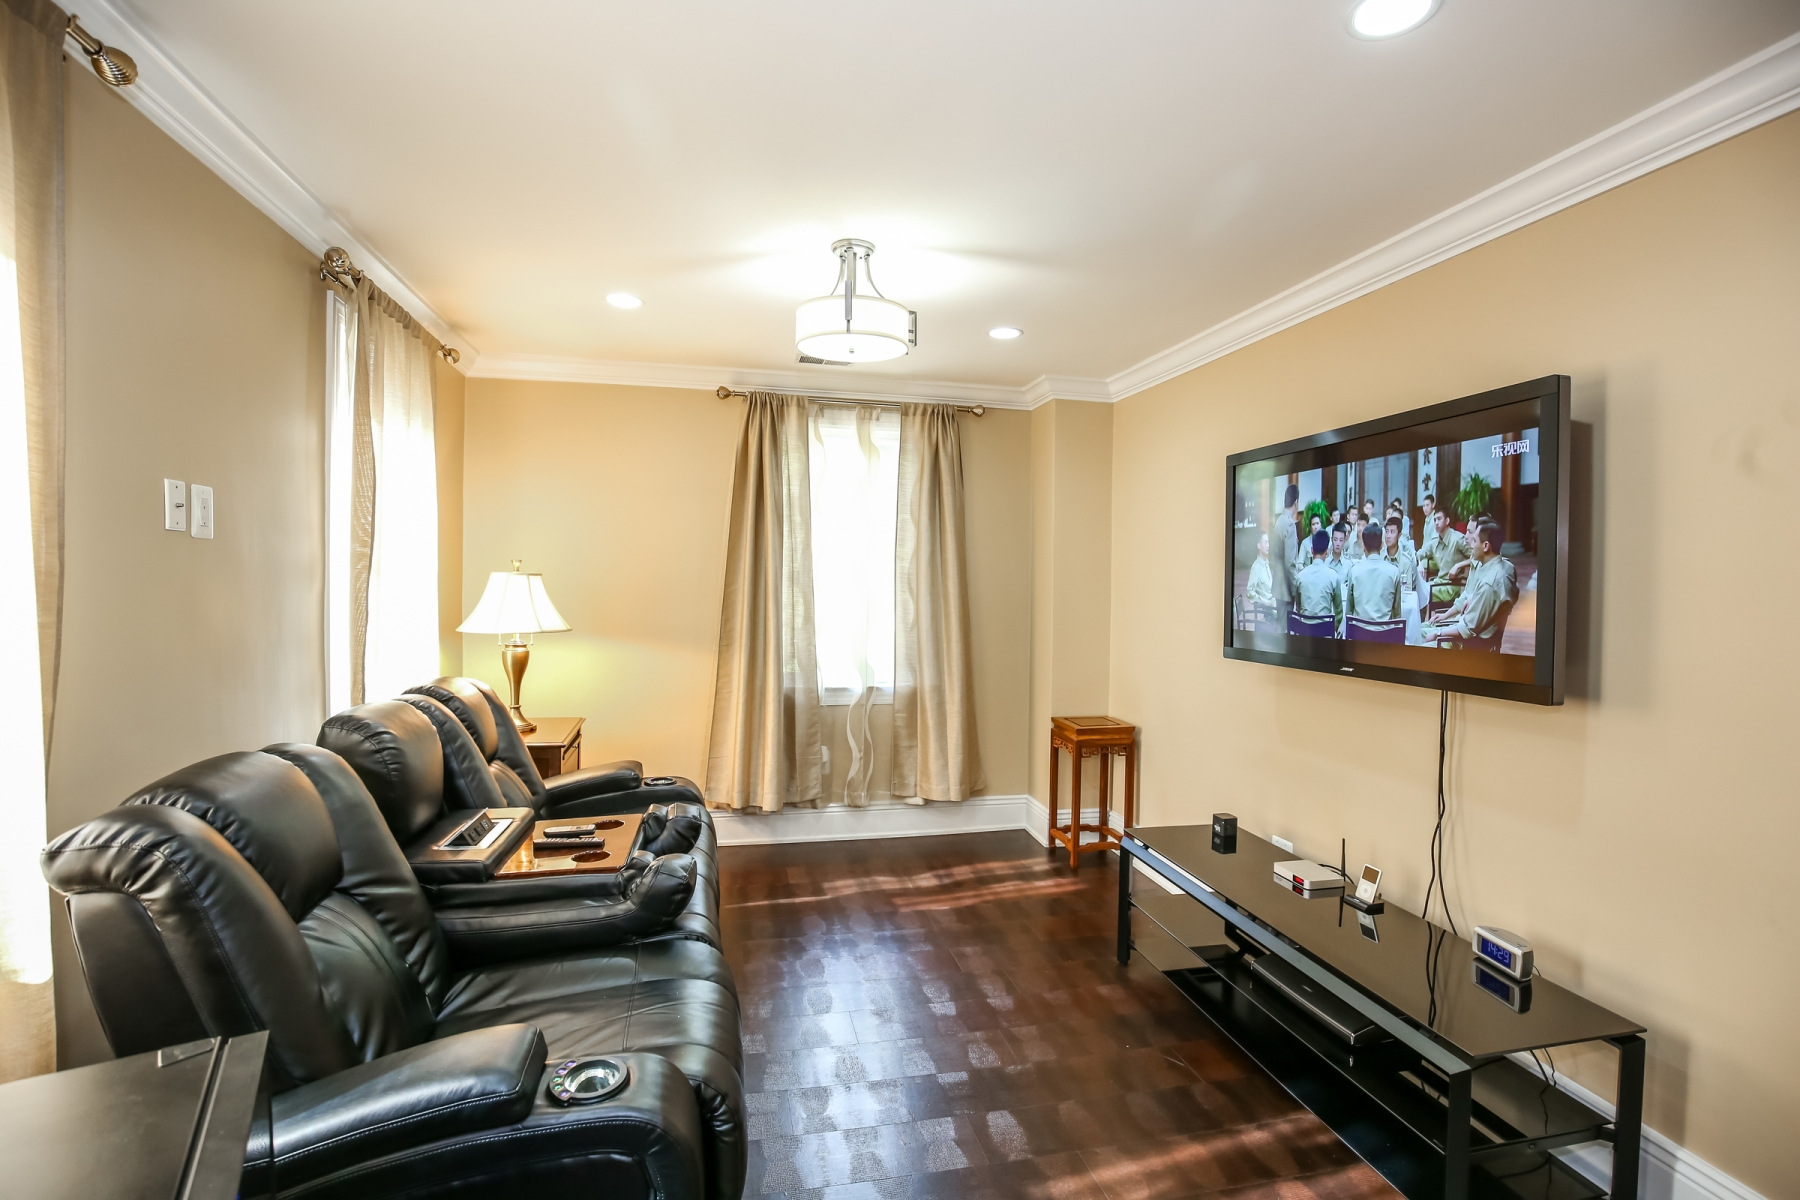 Additional photo for property listing at Forest Hills 2829 Tilden Street Nw 华盛顿市, 哥伦比亚特区 20008 美国